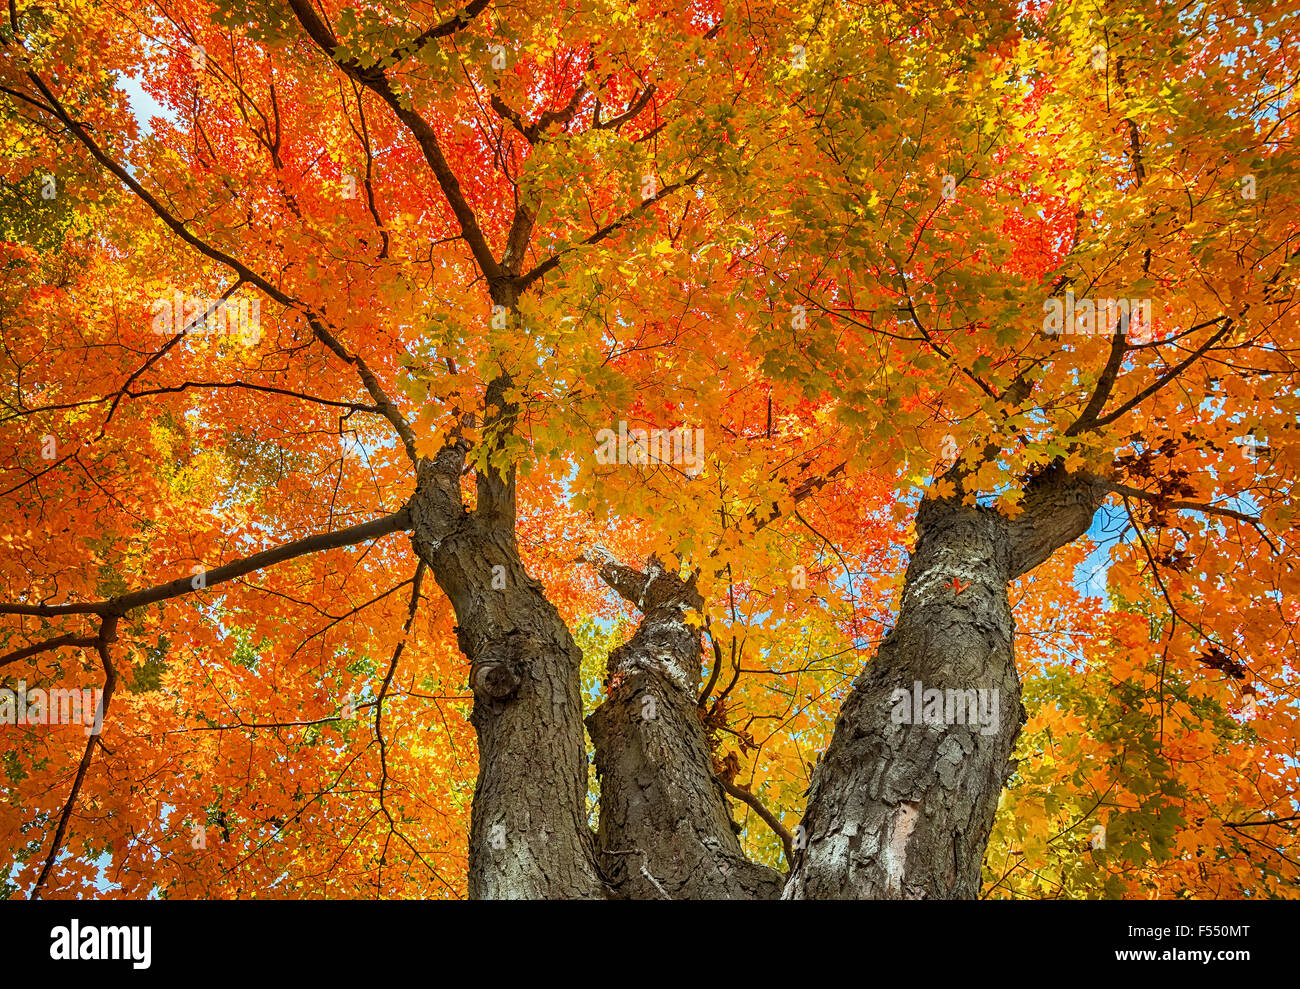 Large Old Tree Autumn Leaves Yellow Stock Photos & Large